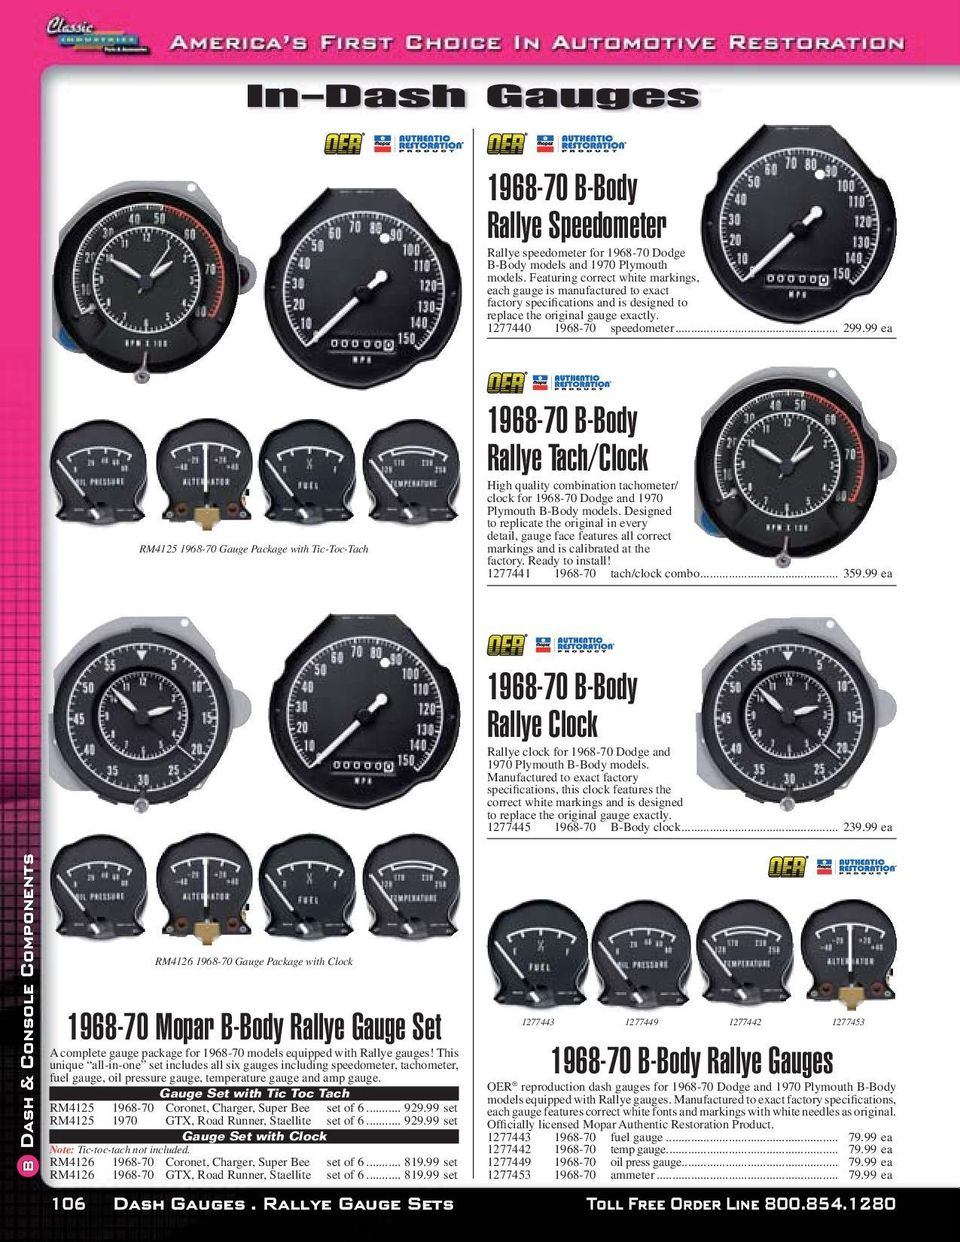 Reproduction Dash Pads Pdf 1968 Camaro Tic Toc Tach Wiring Diagram 99 Ea Rm4125 70 Gauge Package With